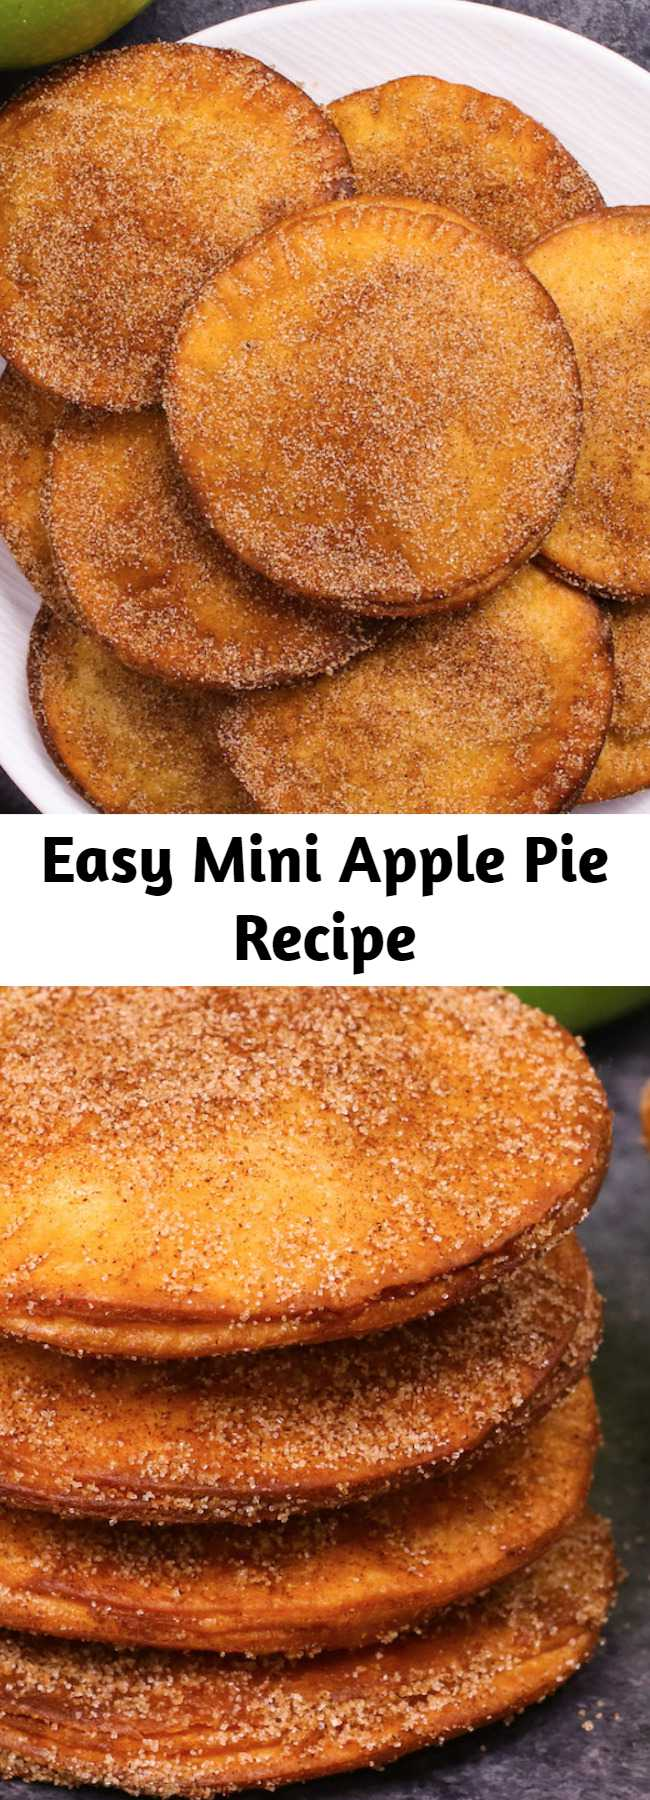 Easy Mini Apple Pie Recipe - Mini Apple Pies have sweet and soft filing with crispy pie on the outside. It's simple to make and takes less than 20 minutes. It's one of my favorite dessert recipes.